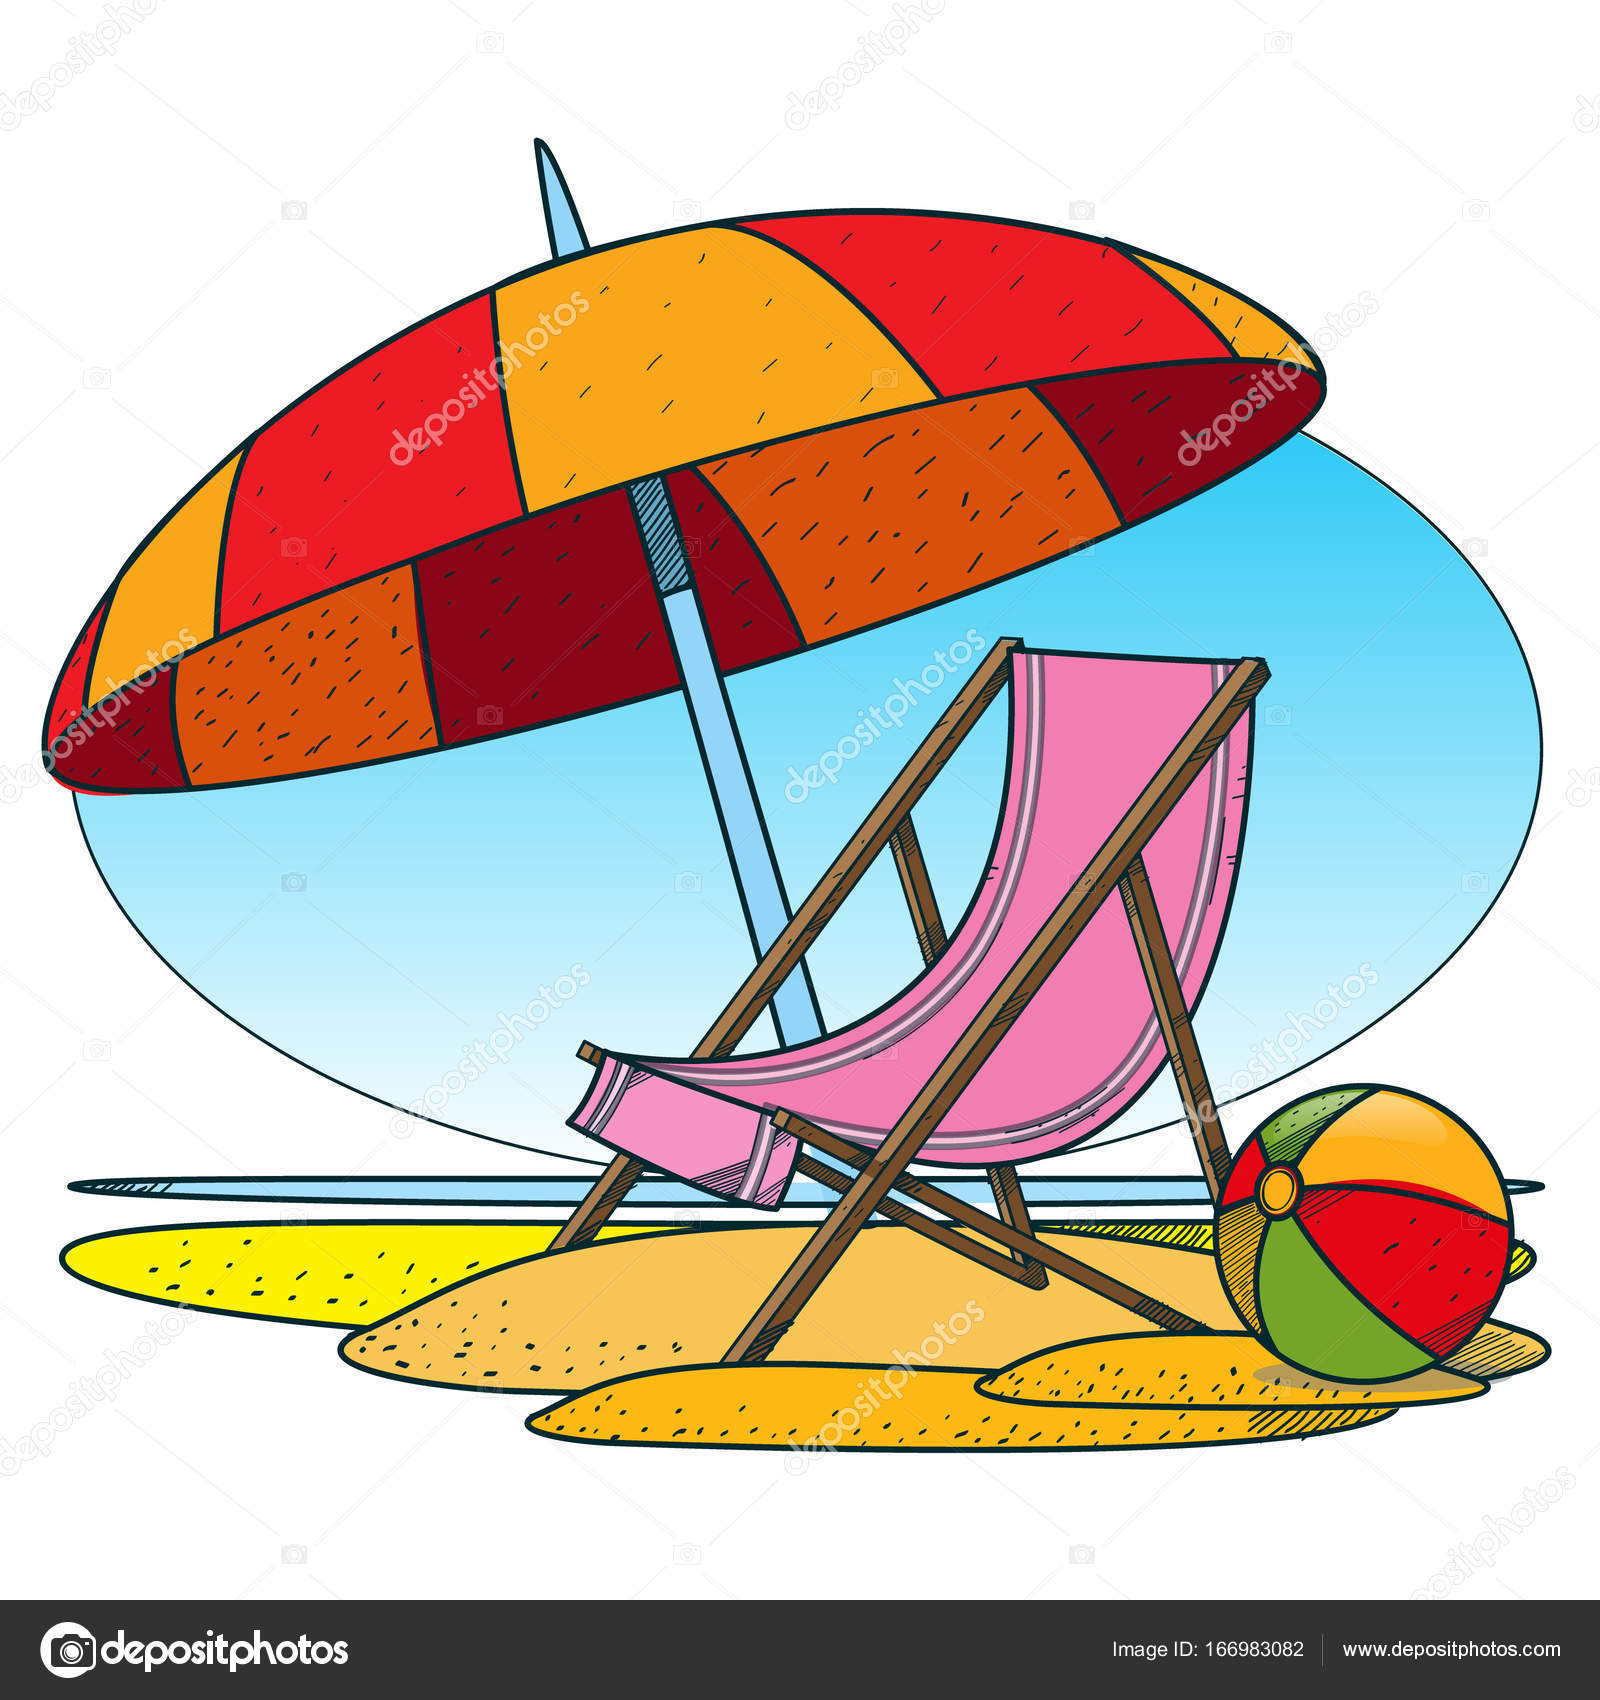 Disegno Ombrellone E Sdraio.Deckchair And Parasol On The Beach Stock Vector C Filkusto